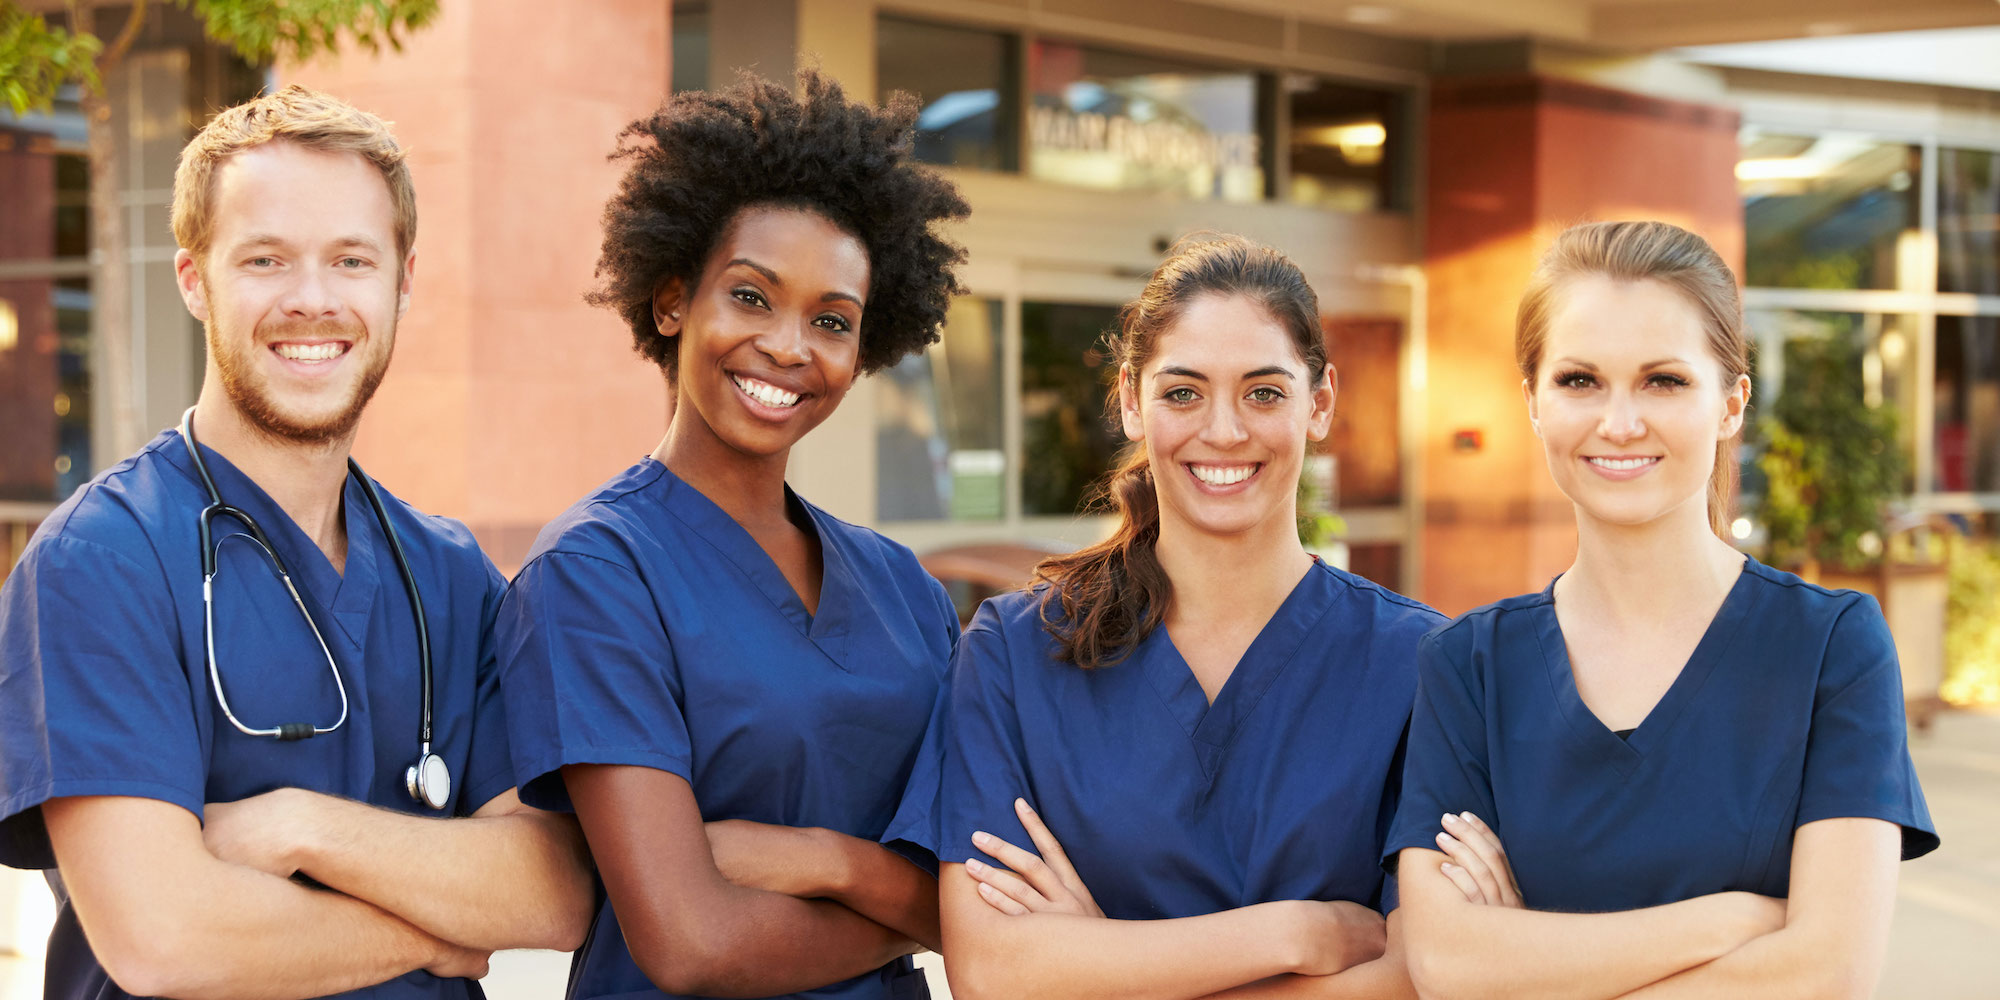 Four nurses ready to work with loved ones through Heritage OnCare